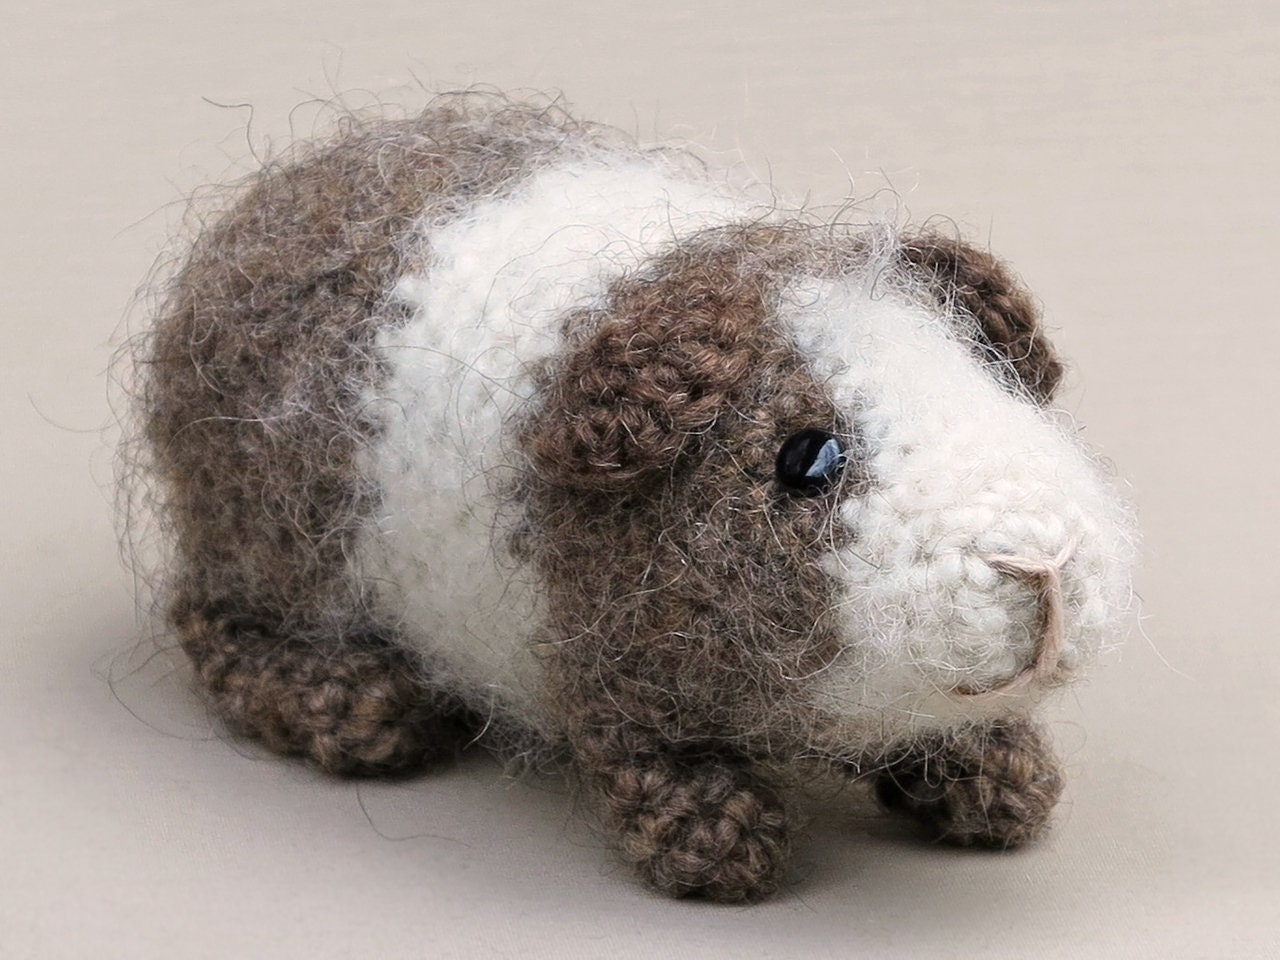 Amigurumi Guinea Pig : Amigurumi crochet guinea pig pattern from sonspopkes on etsy studio